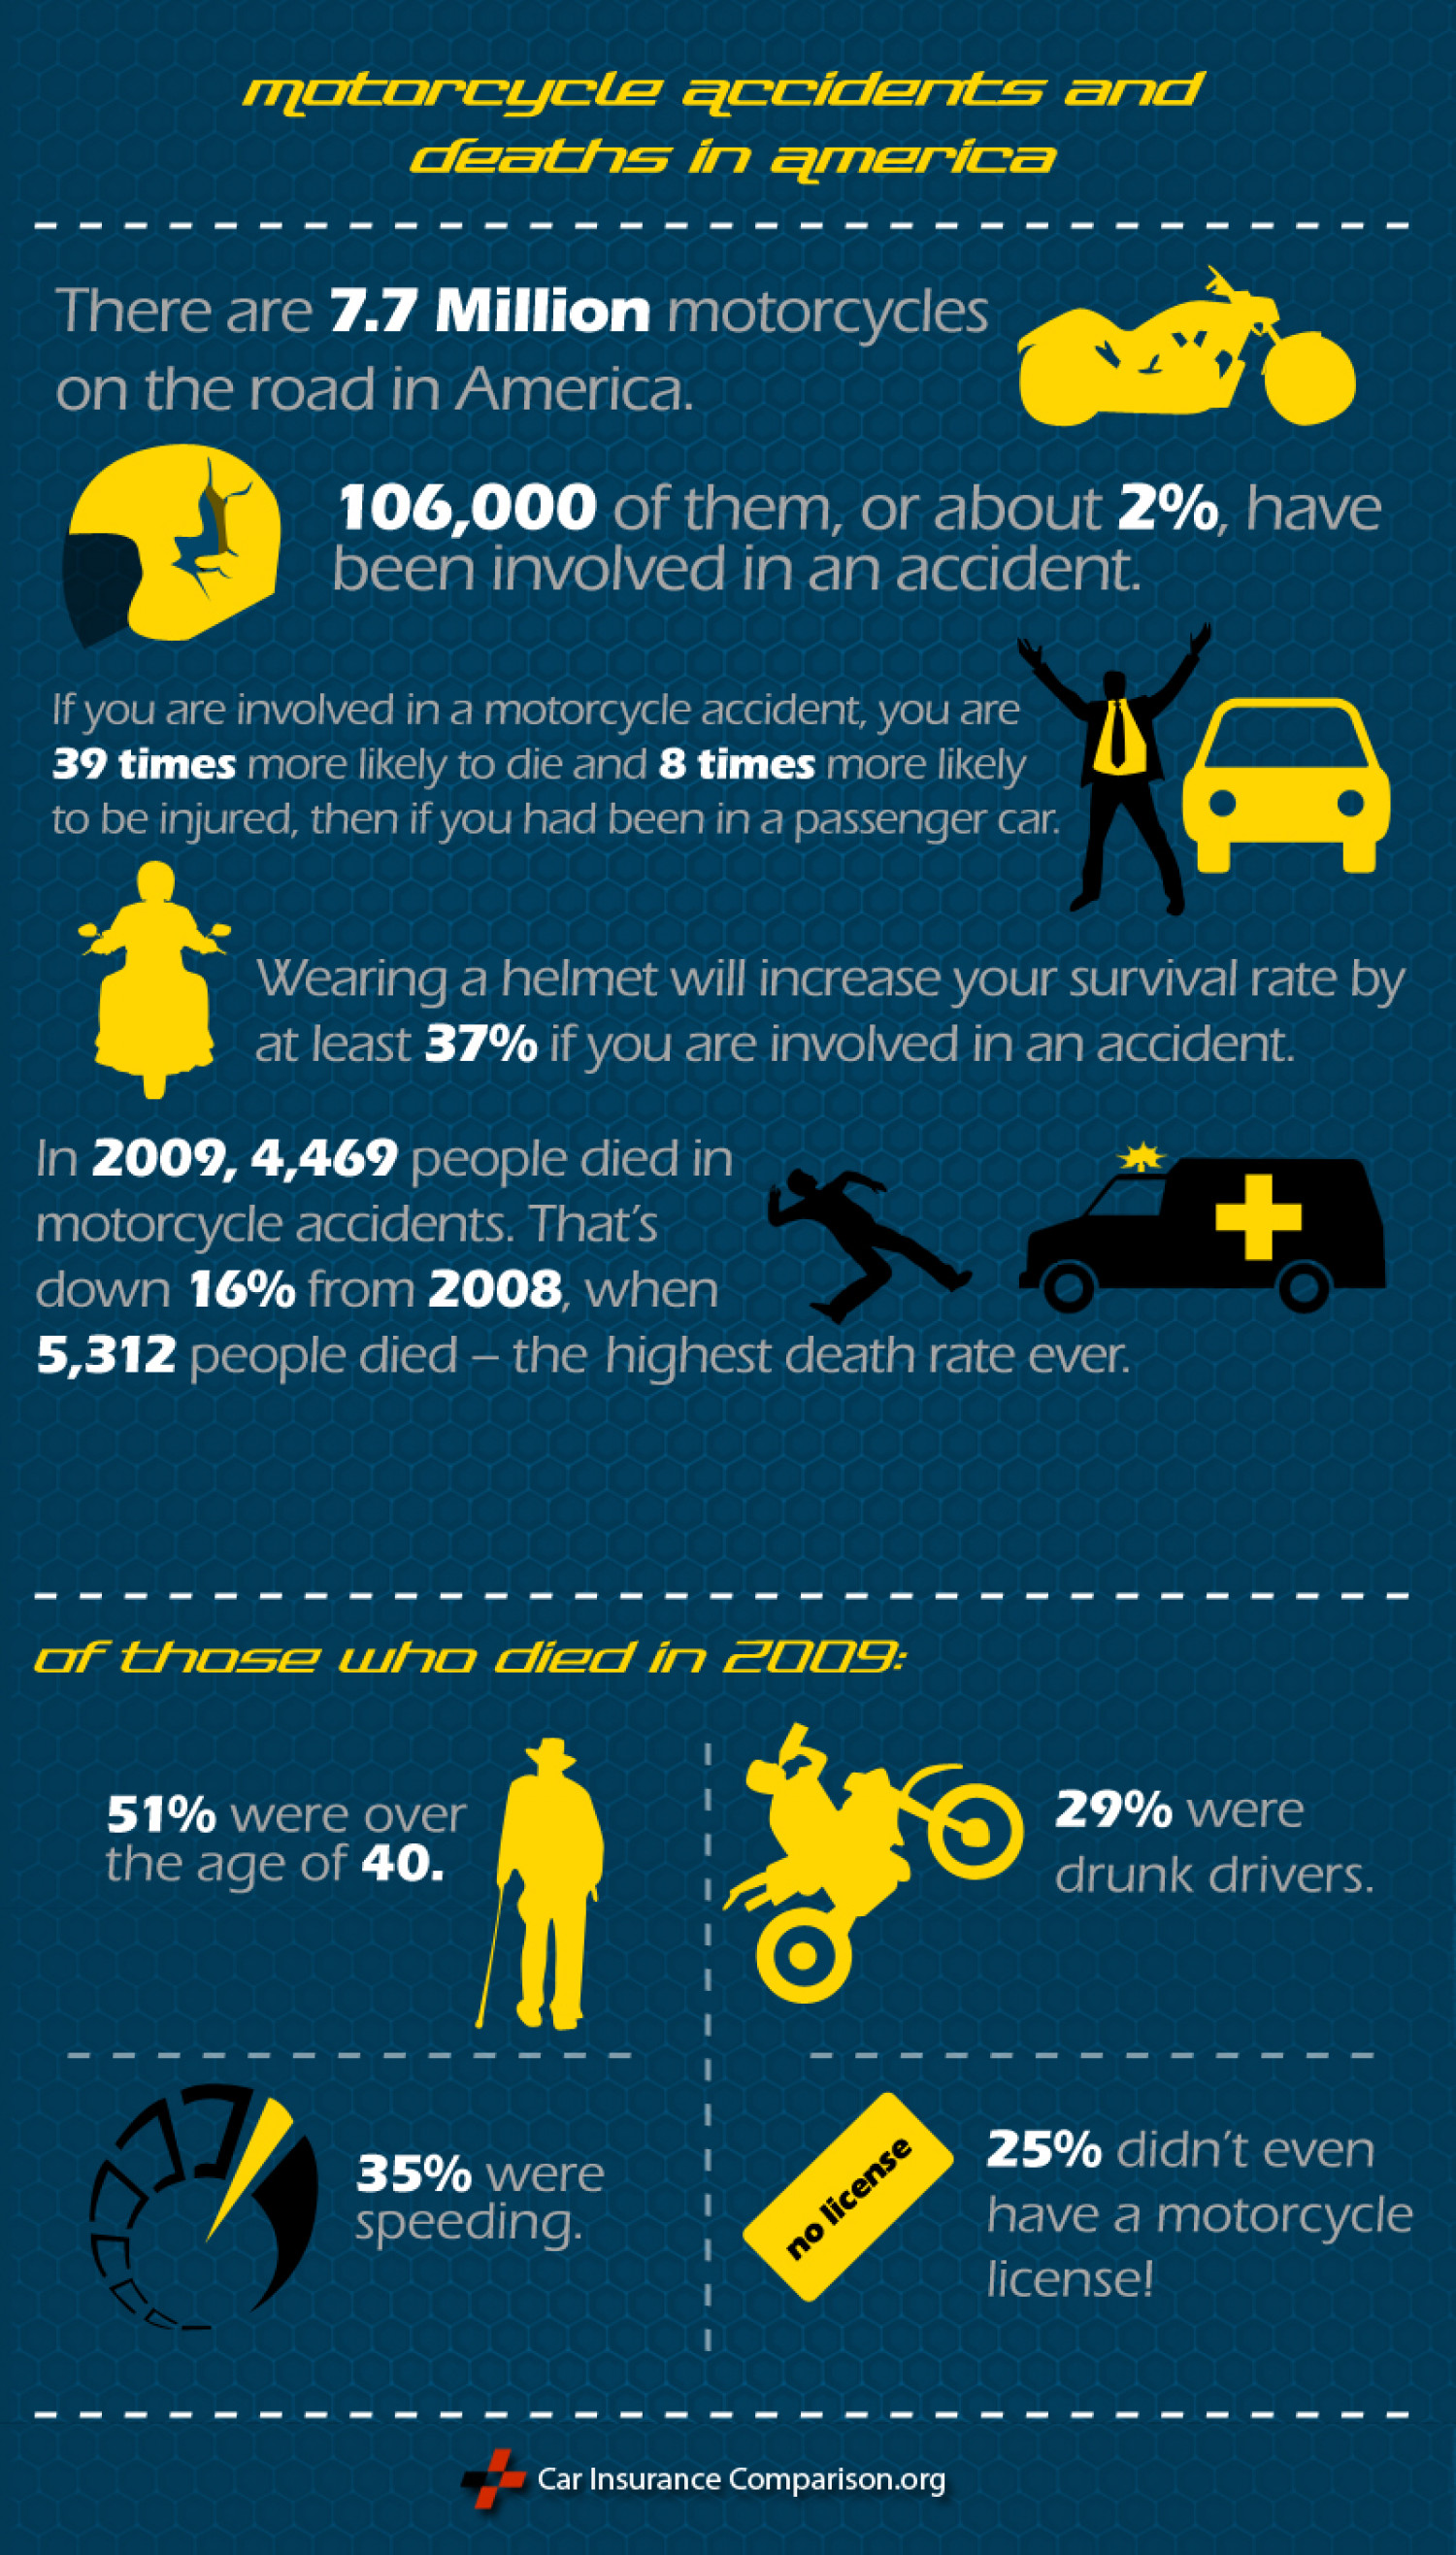 Motorcyle Death and Accident Rates in America Infographic